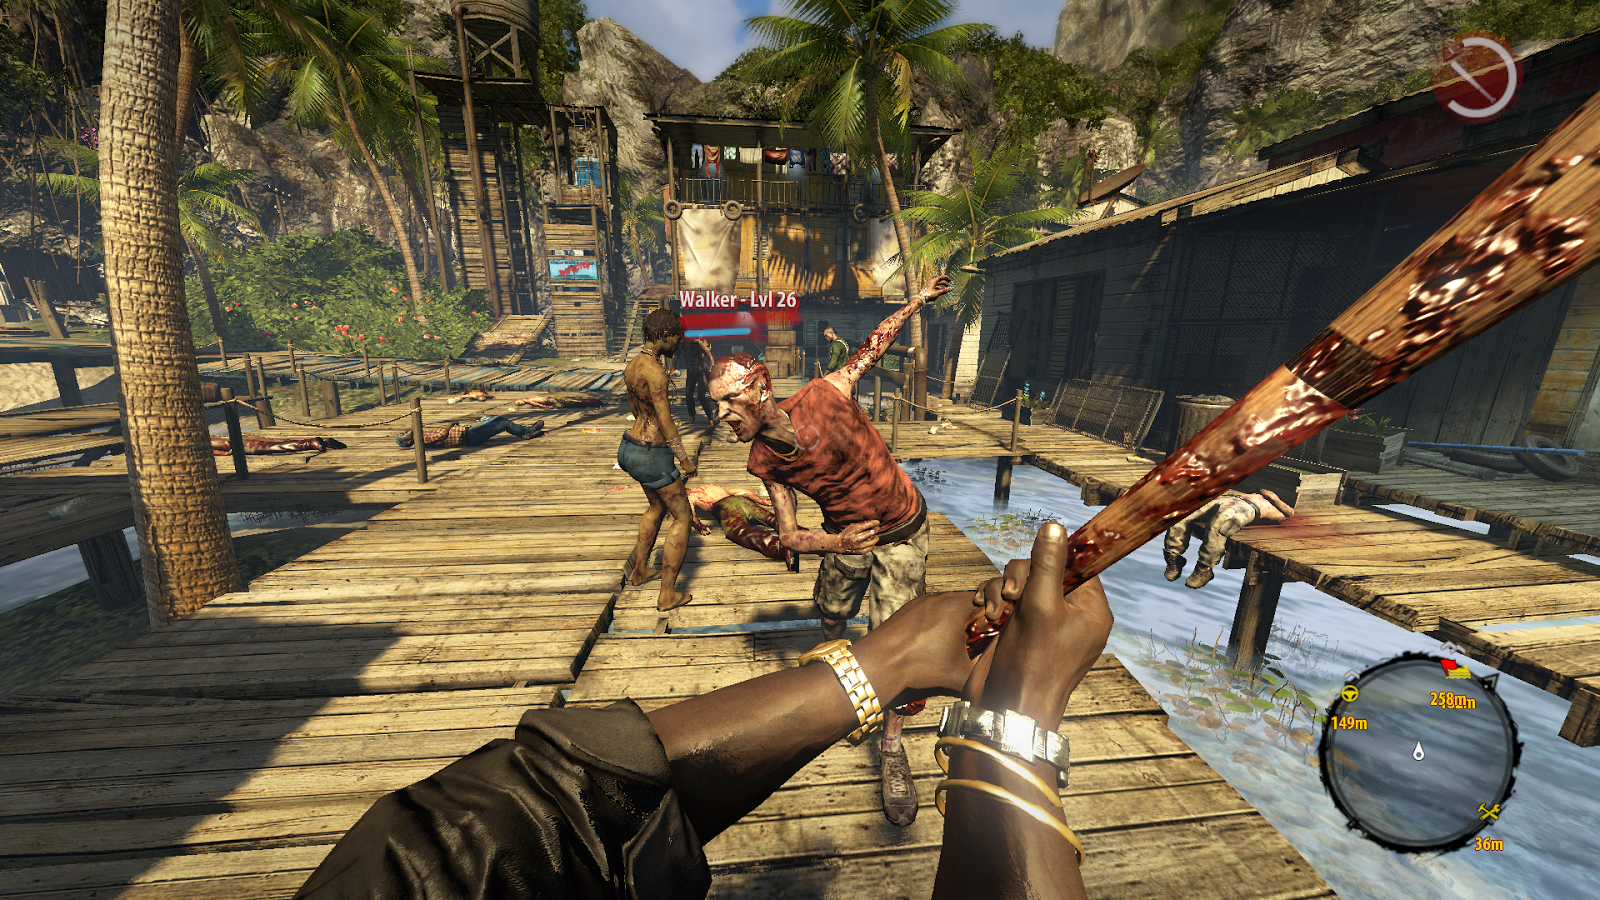 Dead Island Pc Requirements